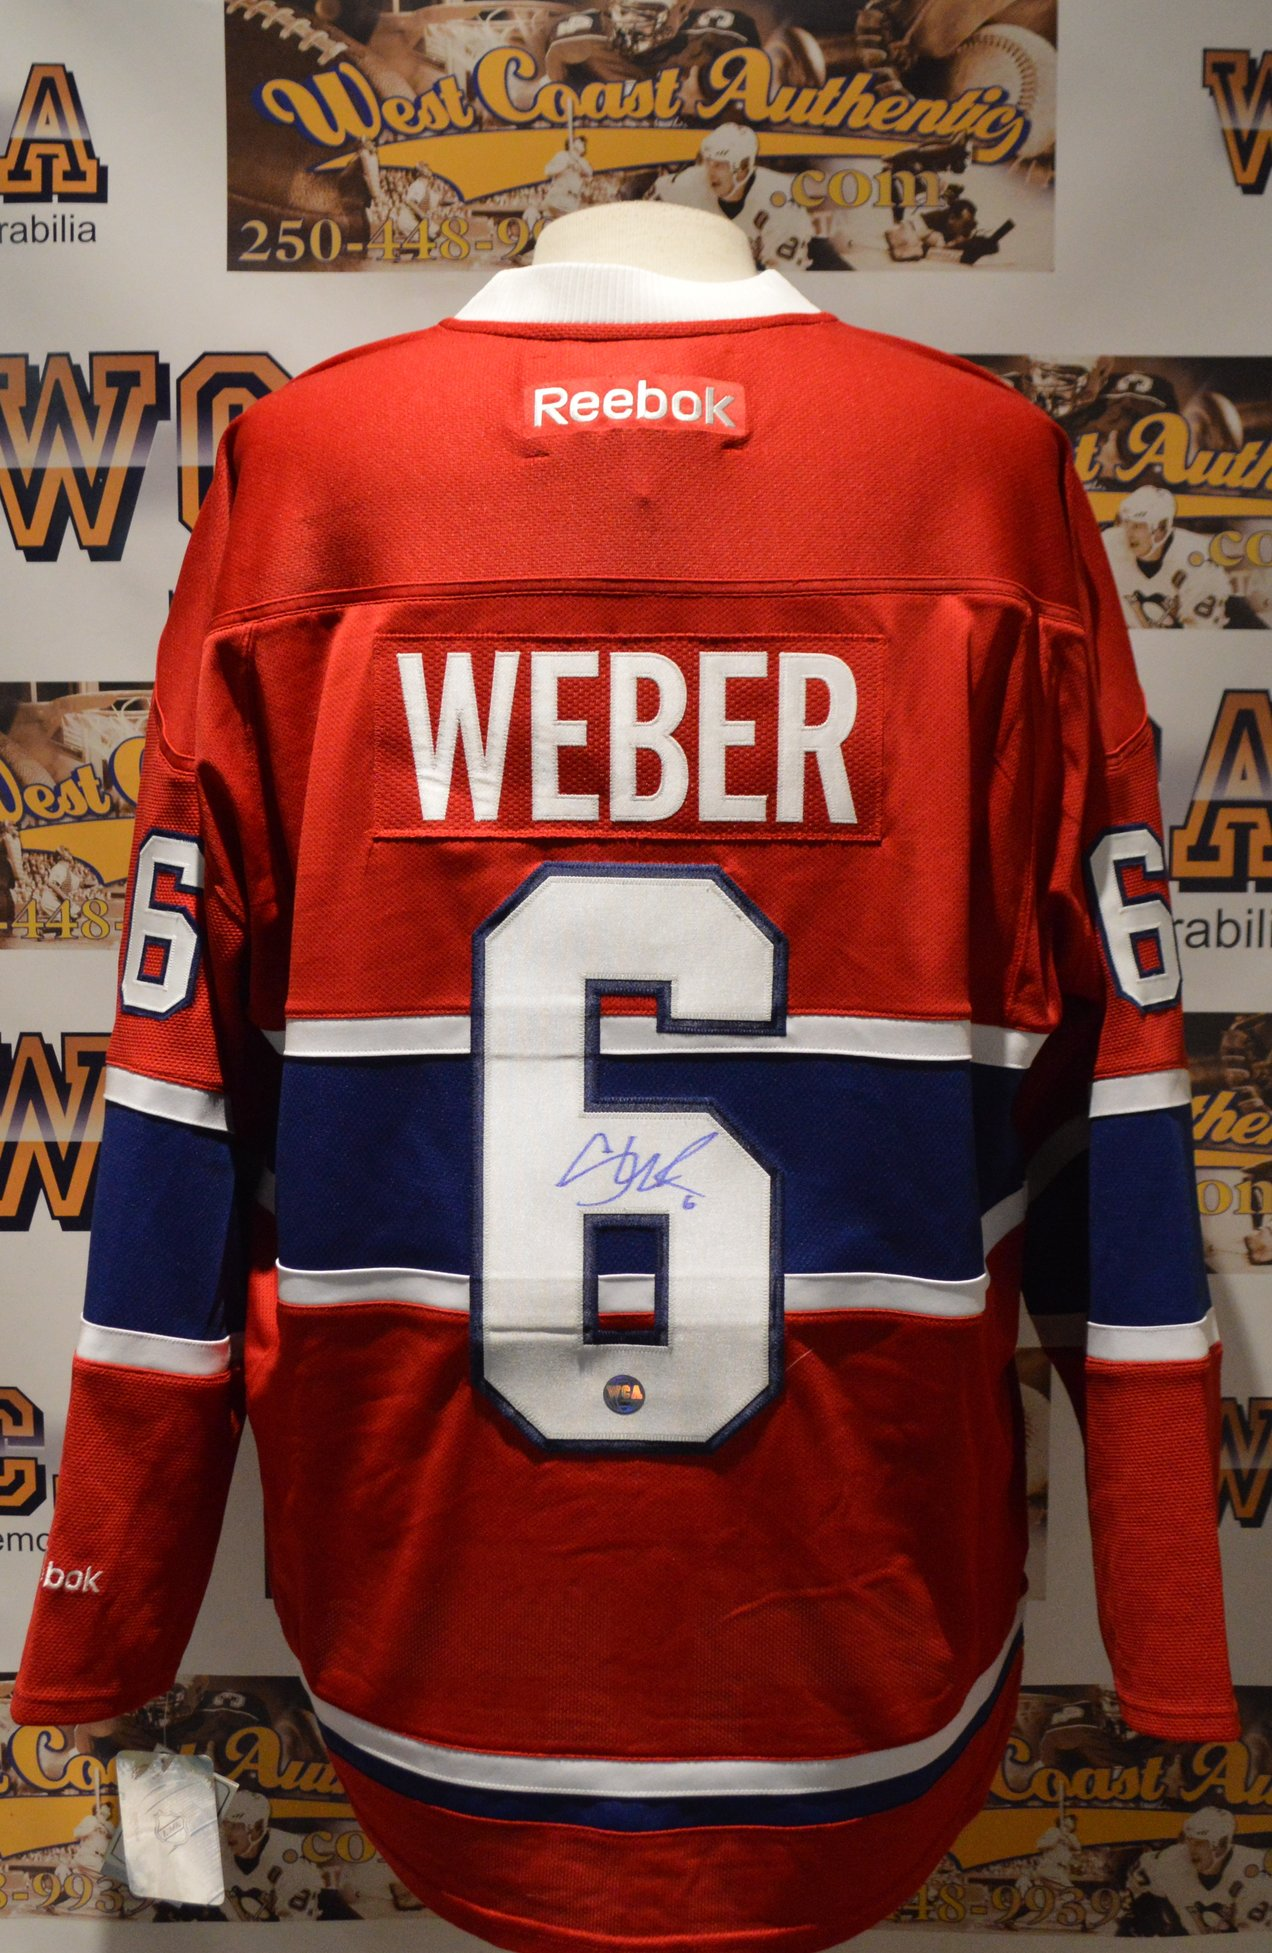 ... Shea Weber Autographed Montreal Canadiens Jersey.  West Coast Authentic NHL Canadiens Shea Weber Autographed Jersey(2) 5fe74457f02